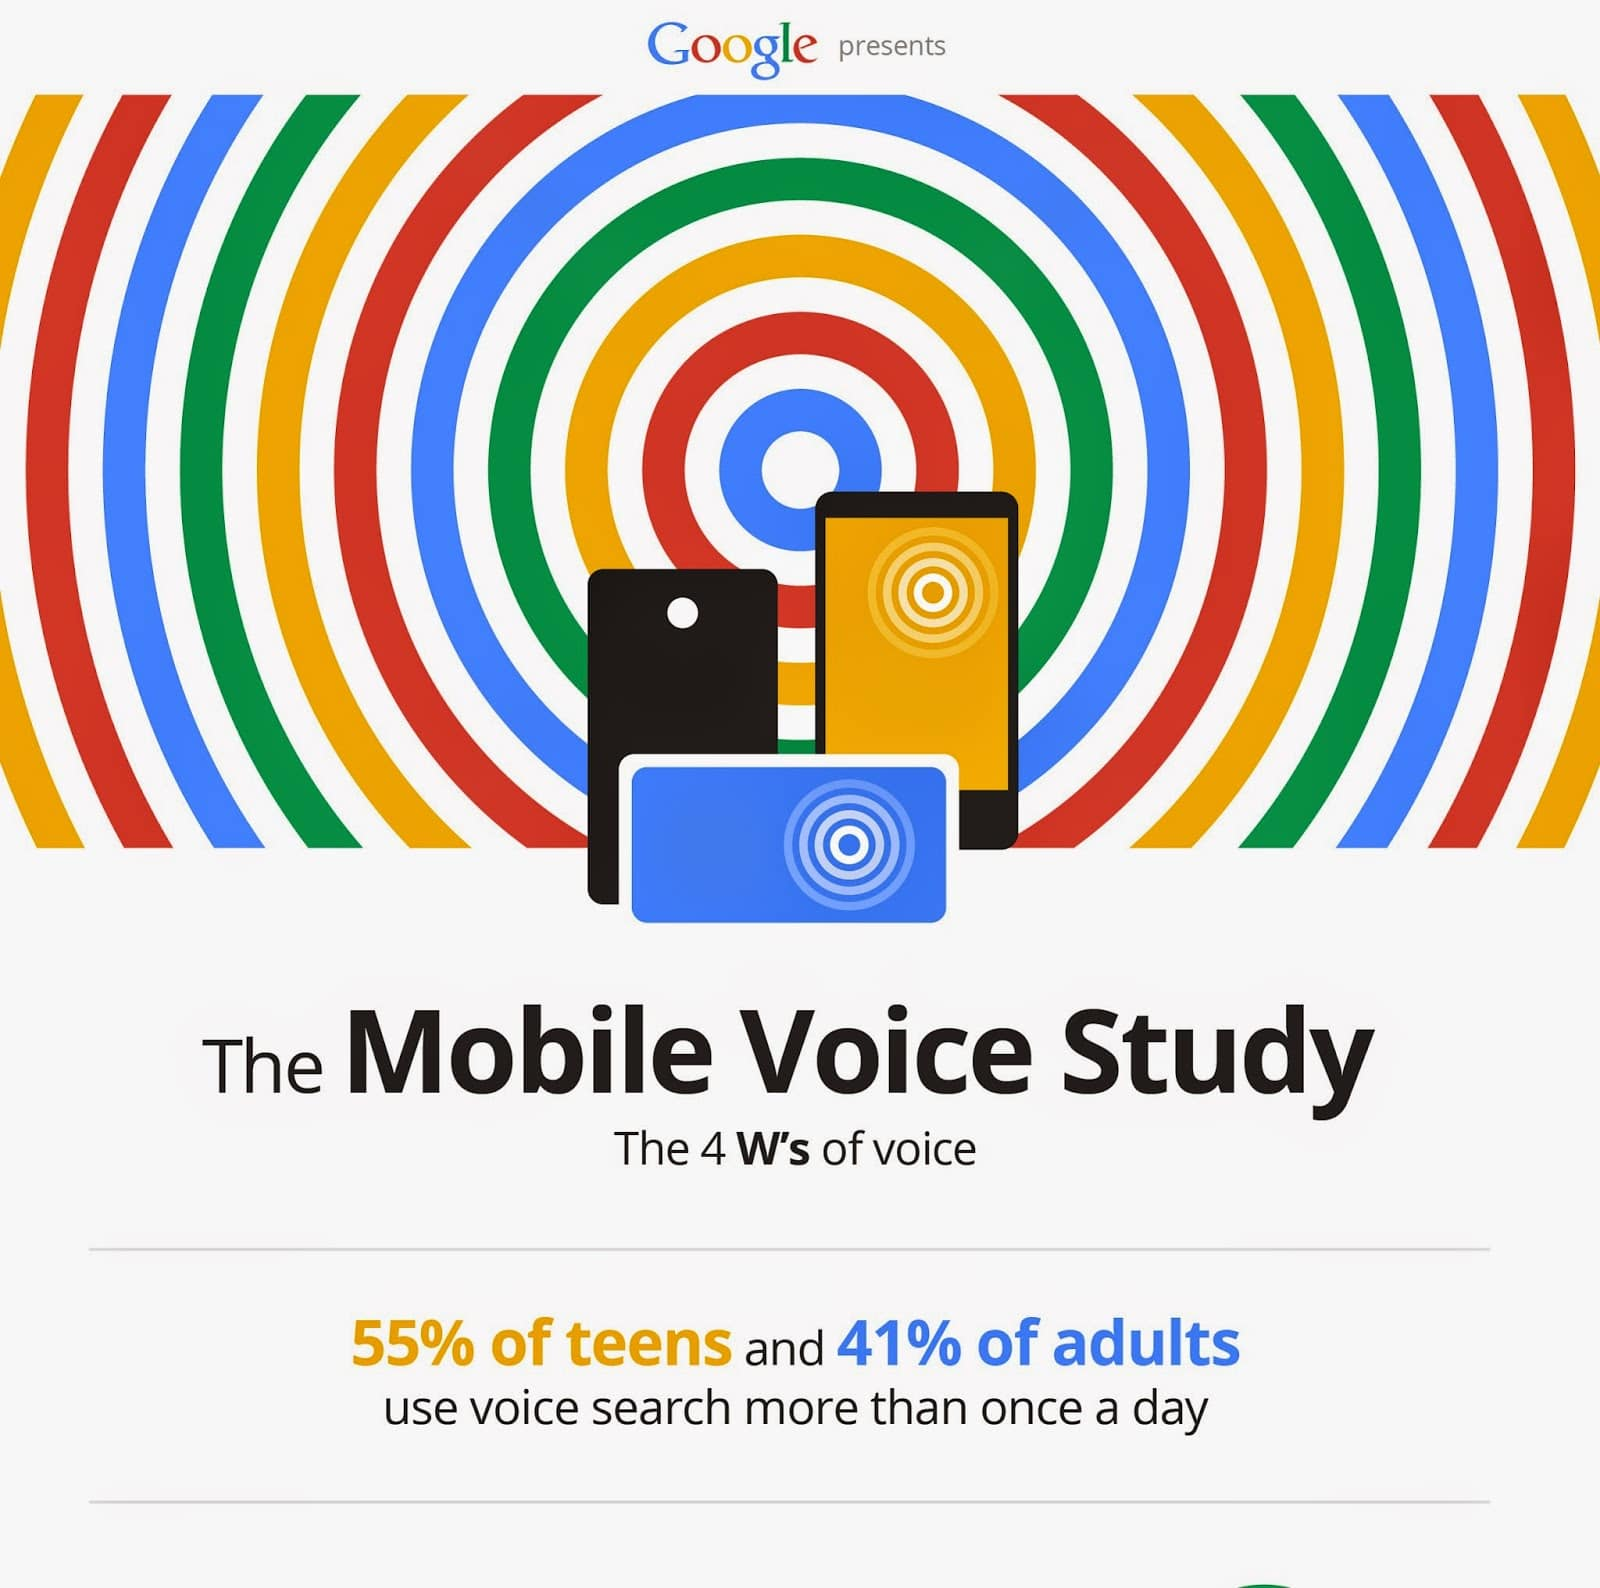 The Mobile Voice Study by Google Infographic